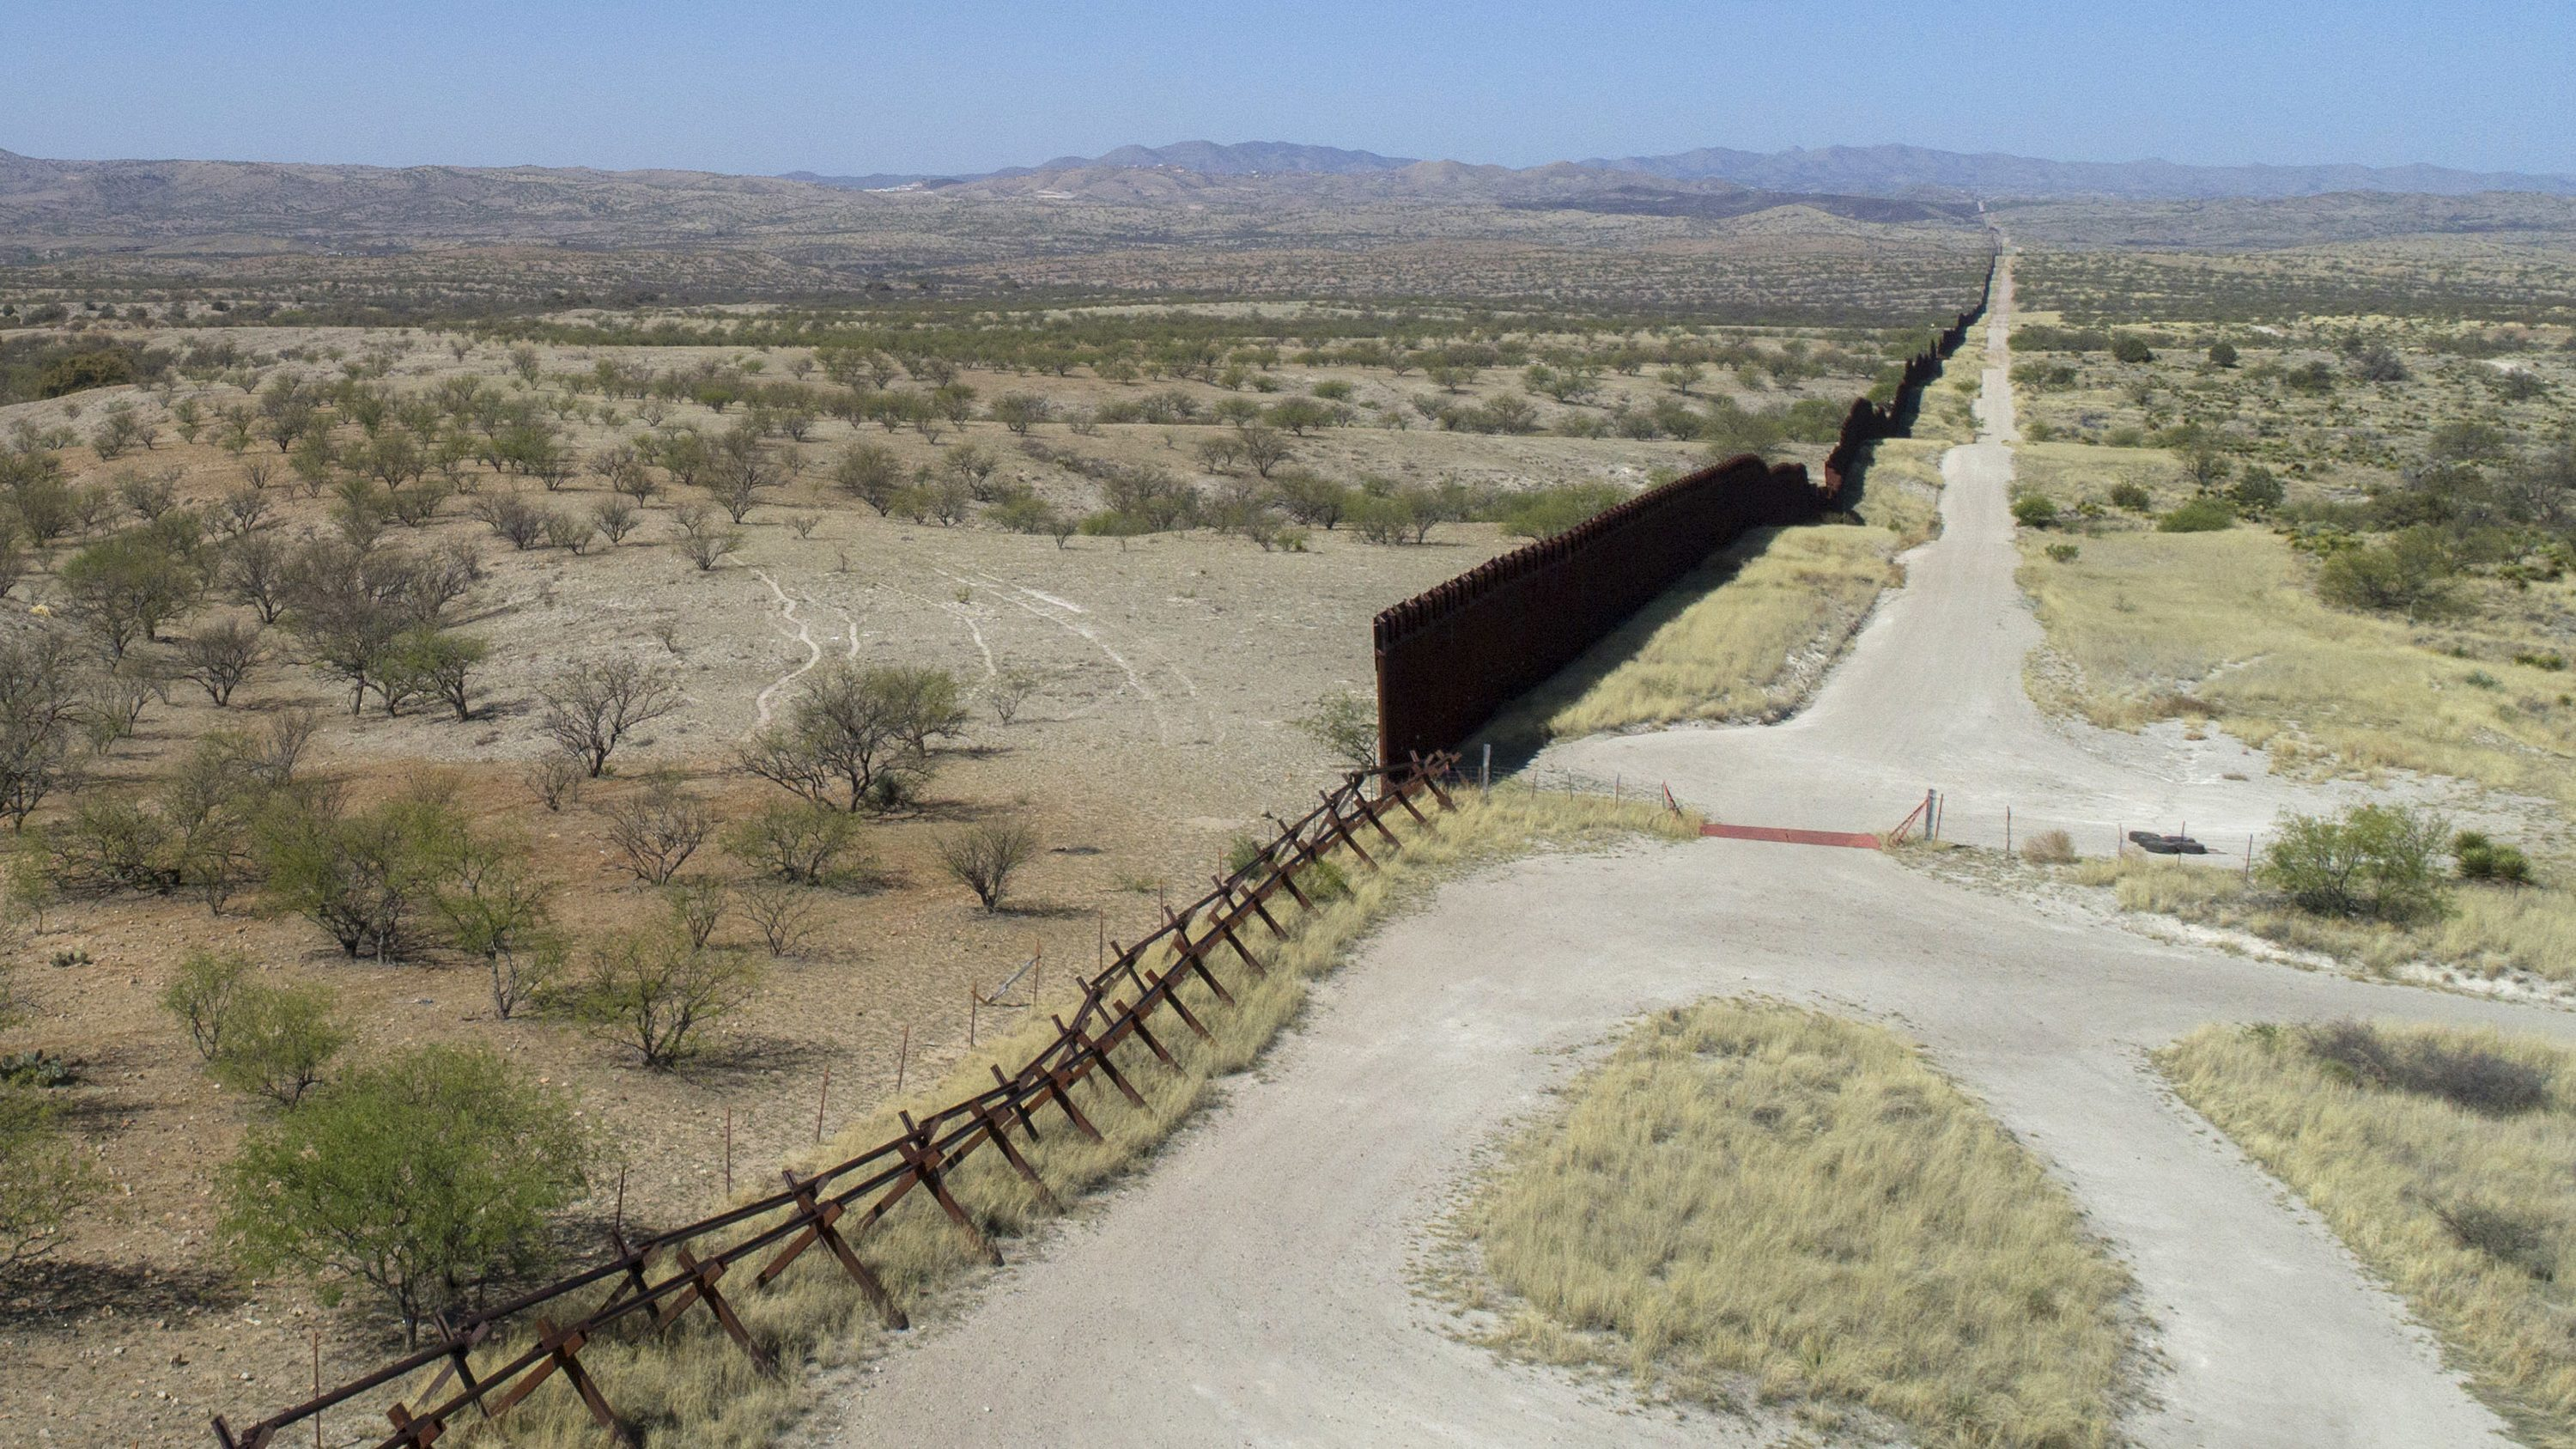 A drone view of the US-Mexico border fence outside Nogales, Arizona